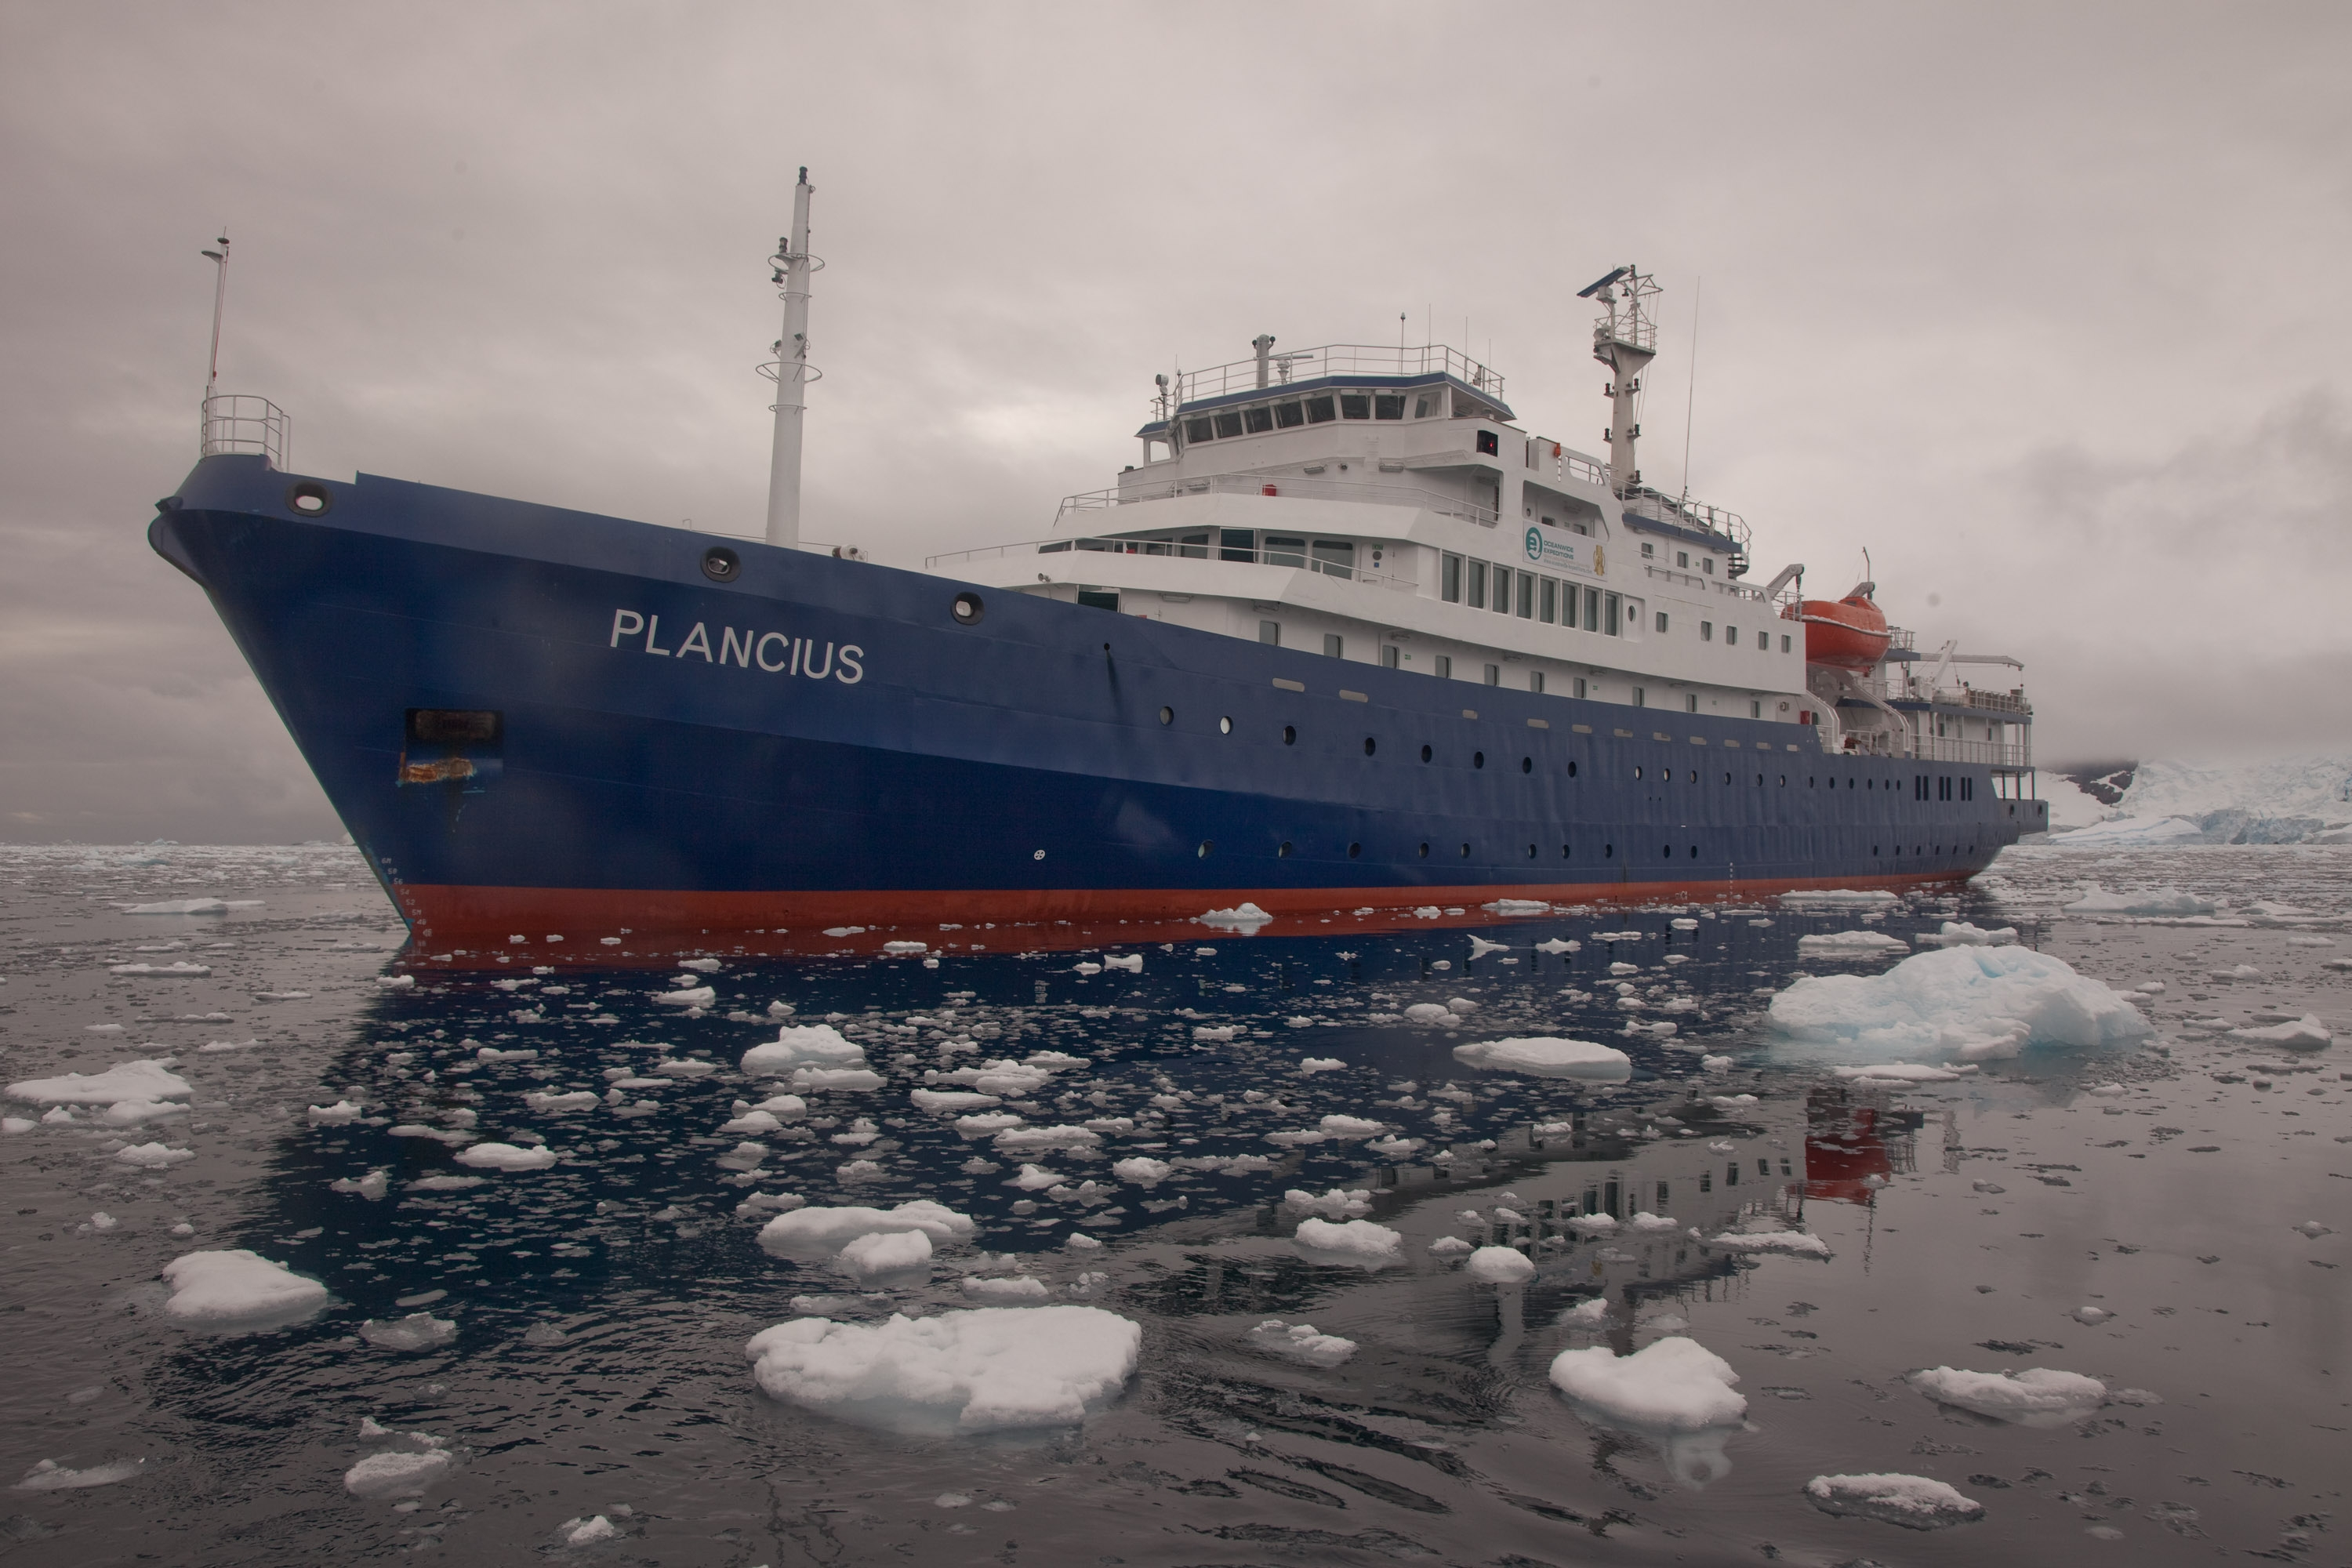 The Plancius Spitsbergen Expedition Cruise